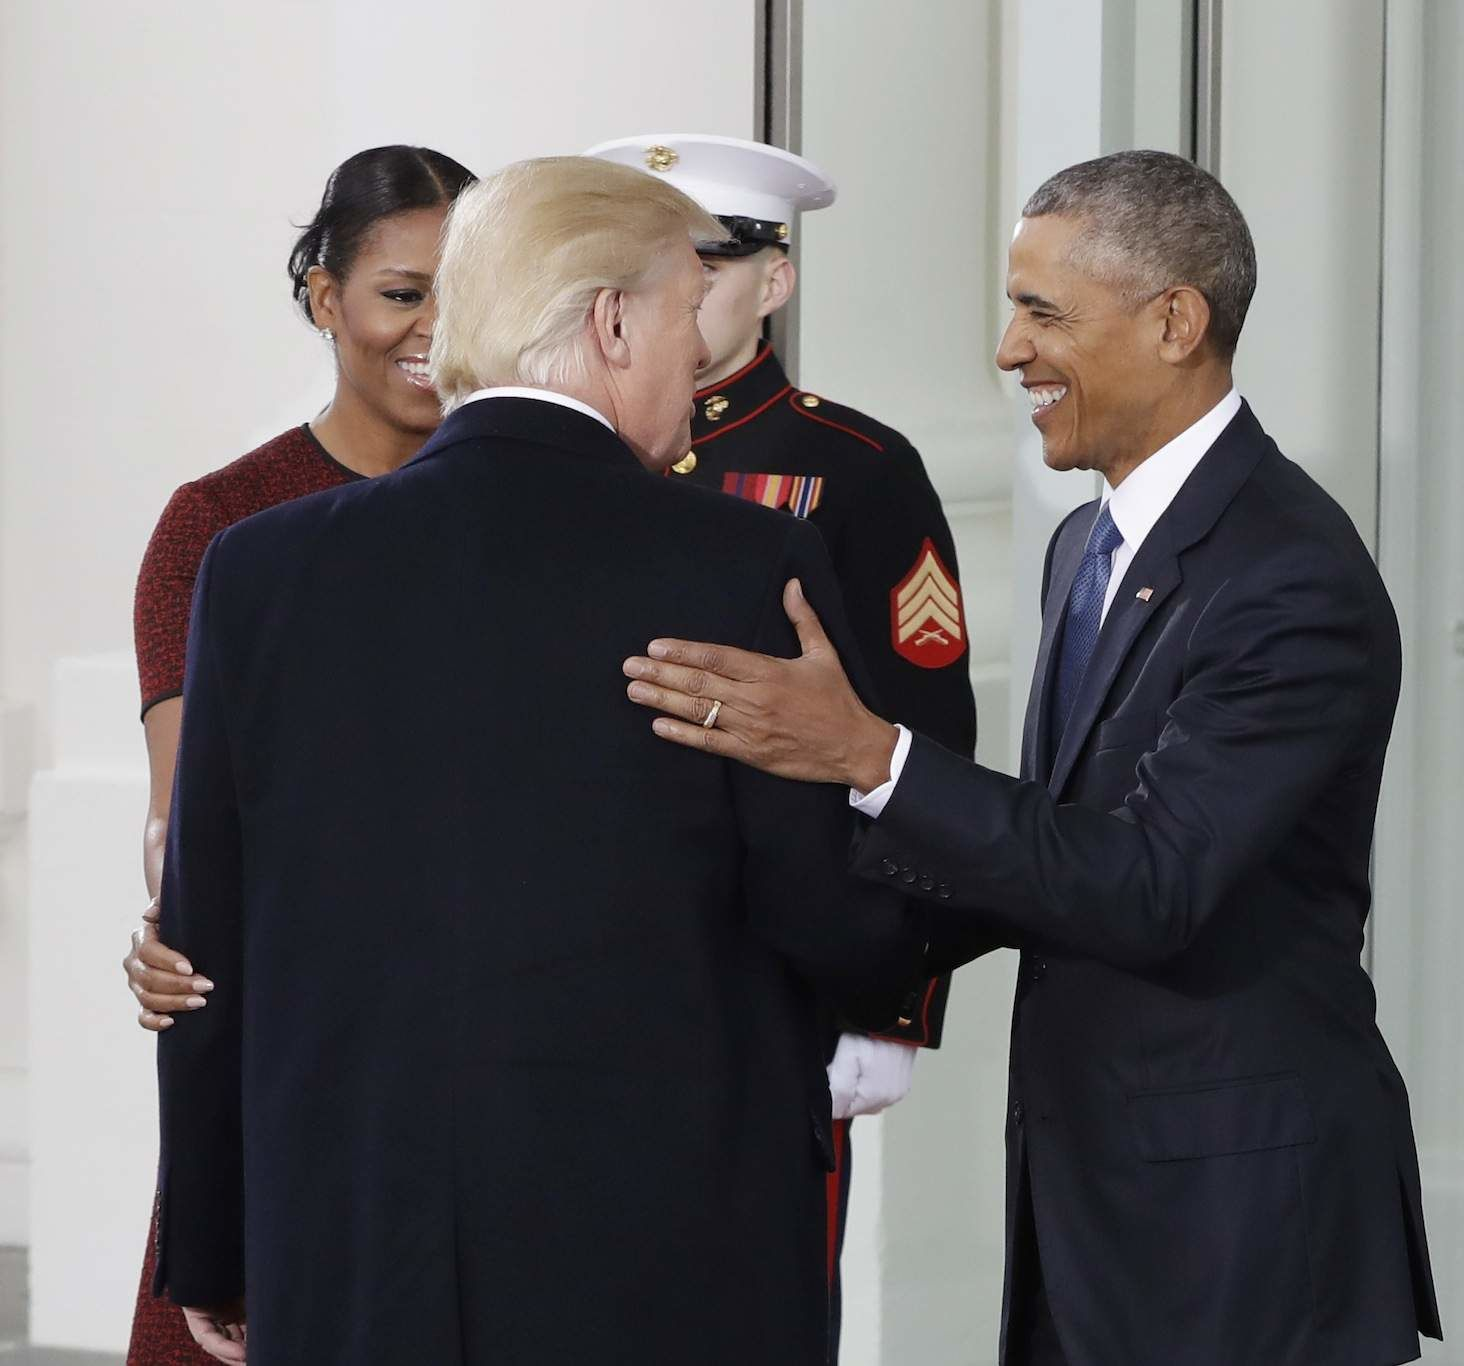 President Barack Obama and first lady Michelle Obama greet President-elect Donald Trump at the White House in Washington, Friday, Jan. 20, 2017. (AP Photo/Evan Vucci)